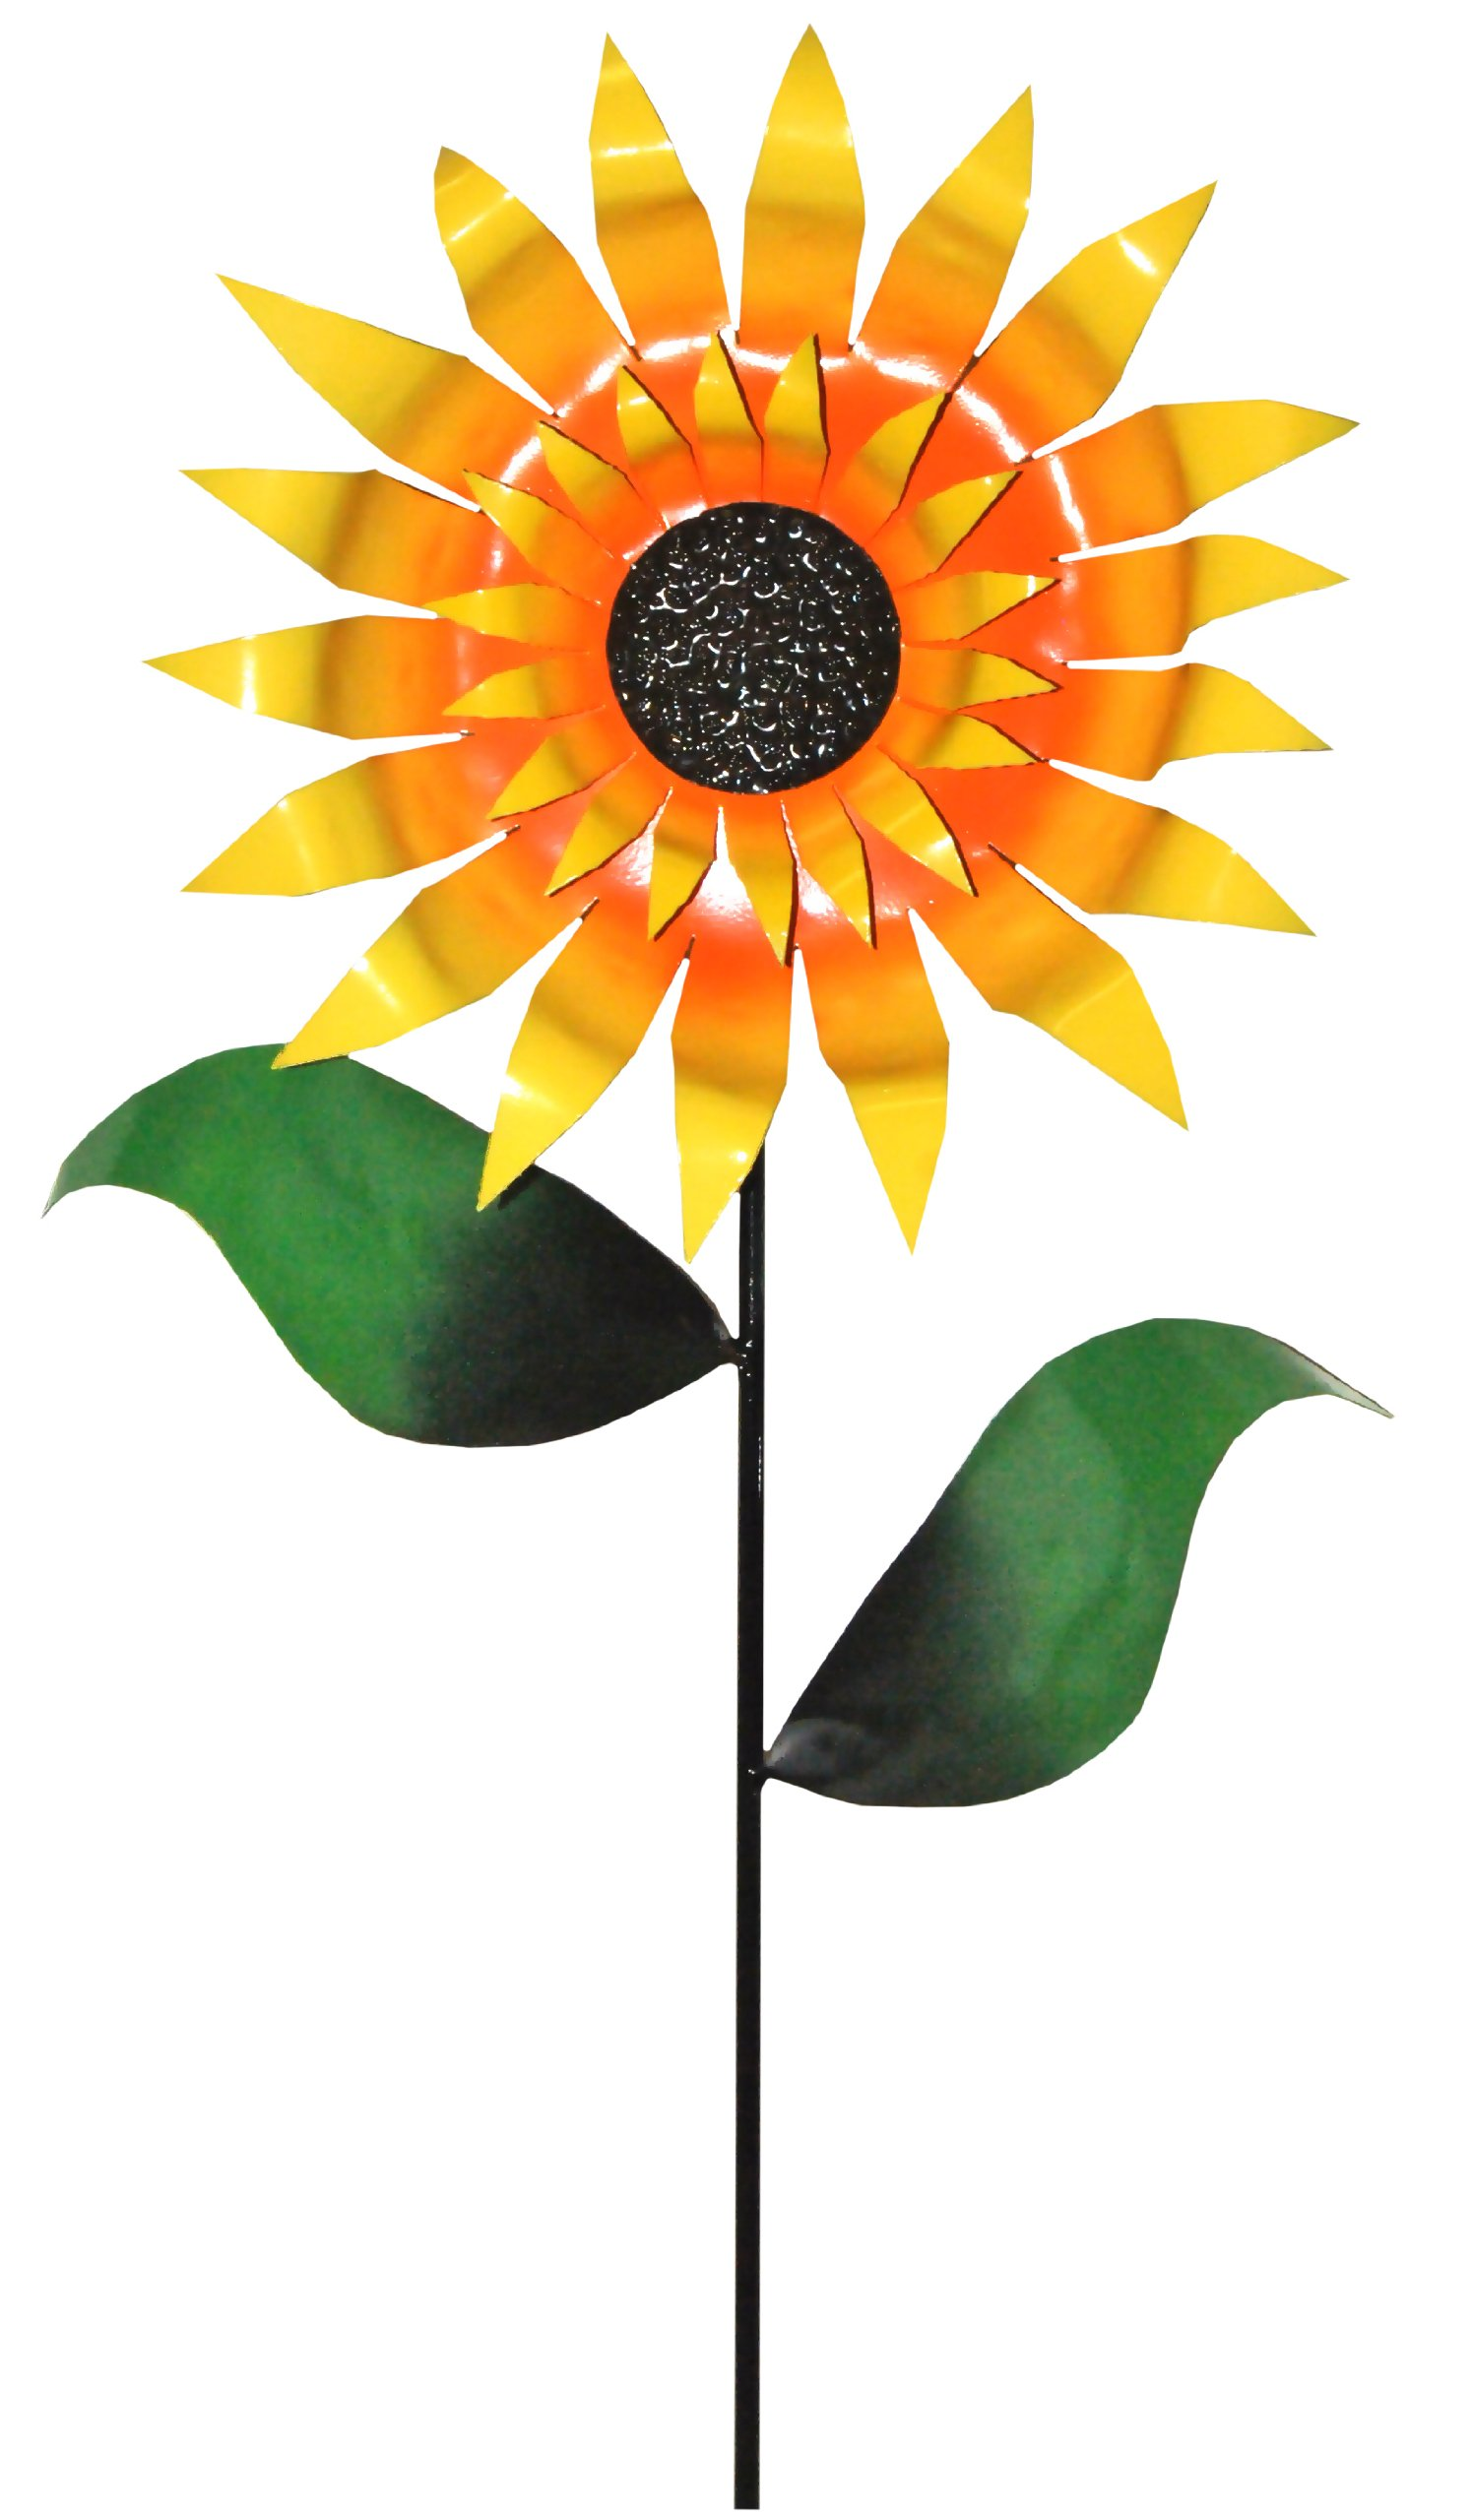 Steven Cooper Metalsmith AFLWR-01-L Artificial Garden Flower on Footed Stake, 5-Feet , Yellow